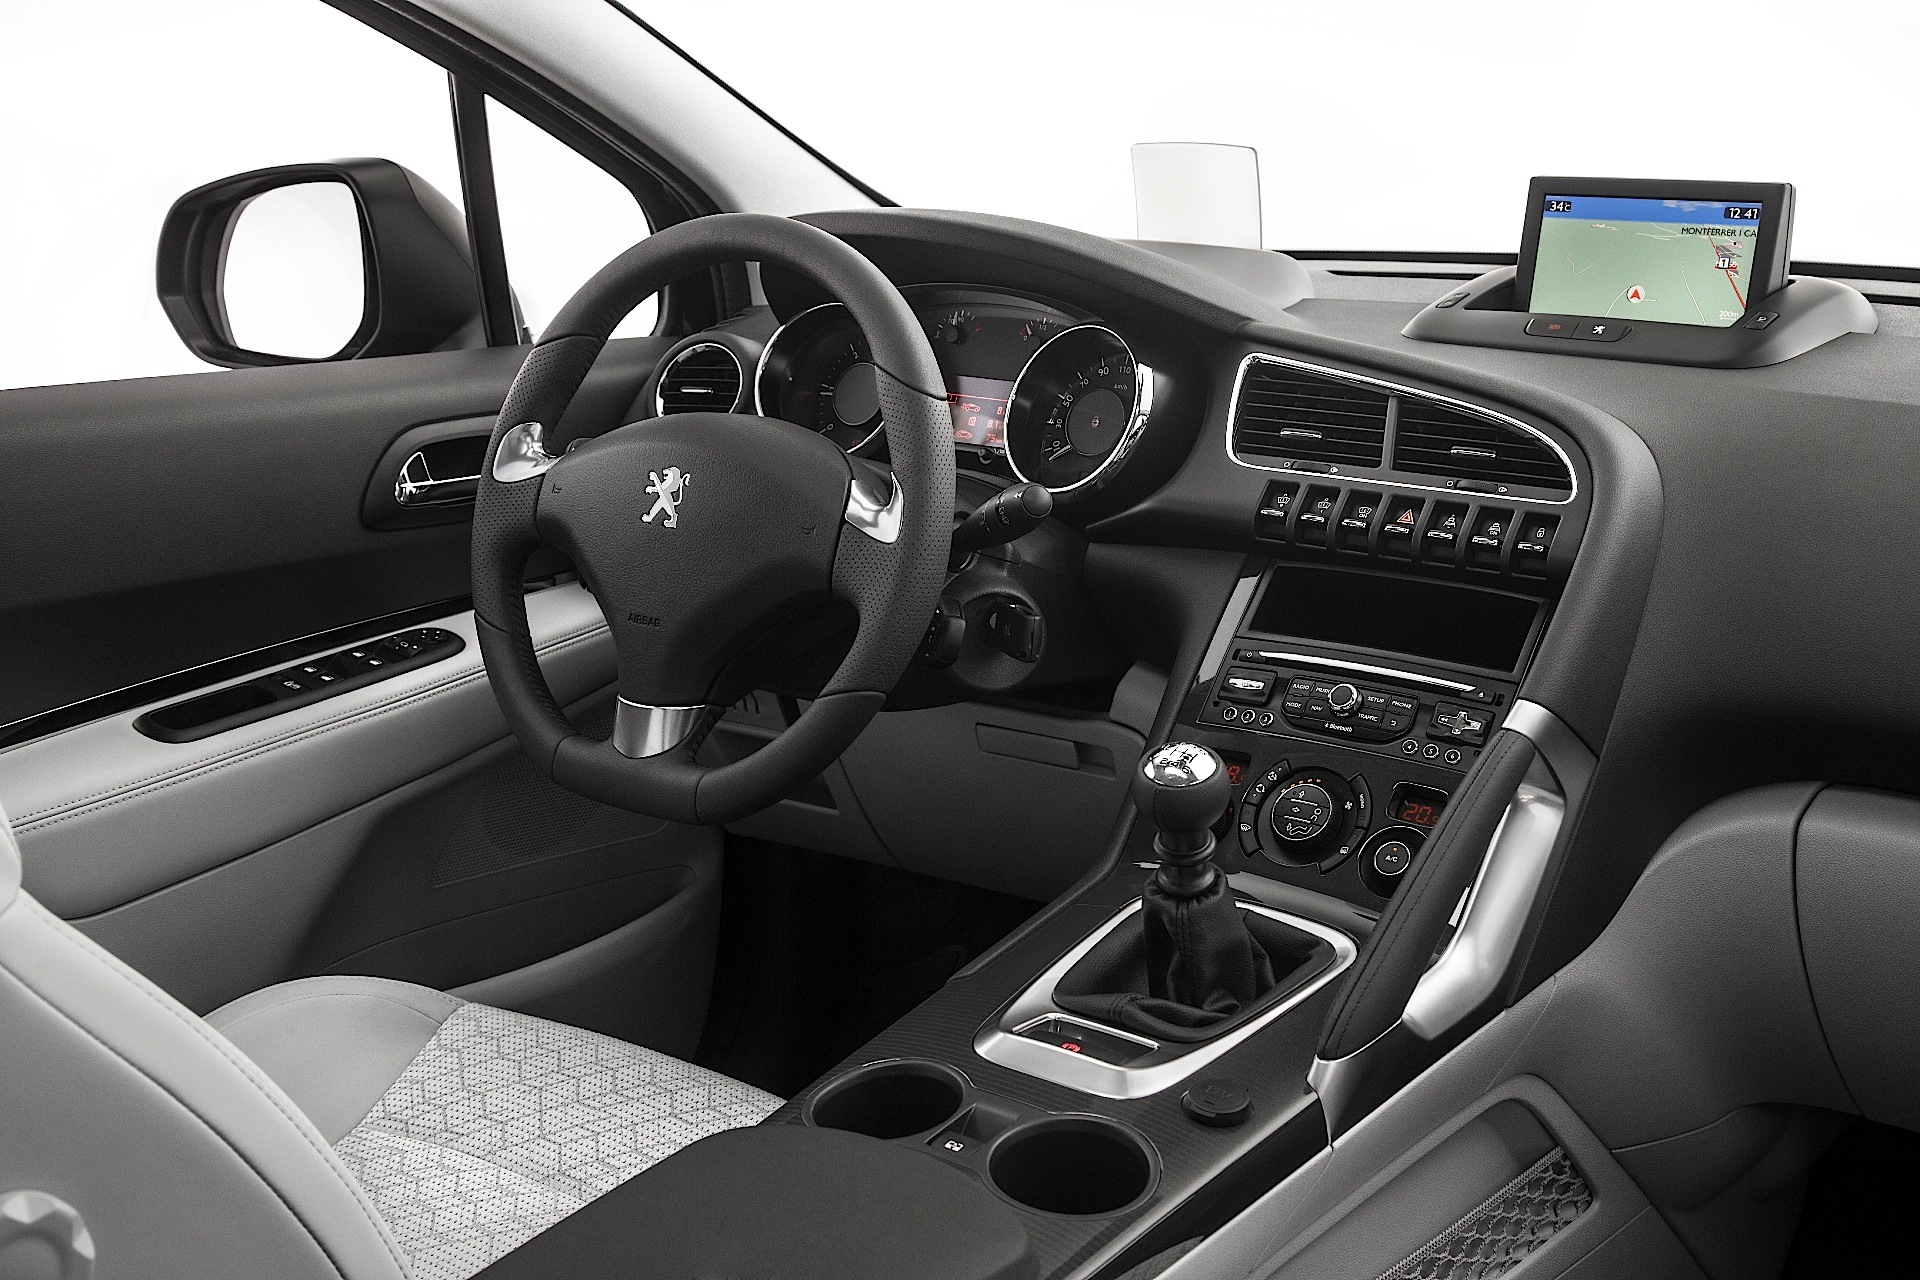 Peugeot 301 2016 Interior >> PEUGEOT 3008 specs & photos - 2013, 2014, 2015, 2016 - autoevolution